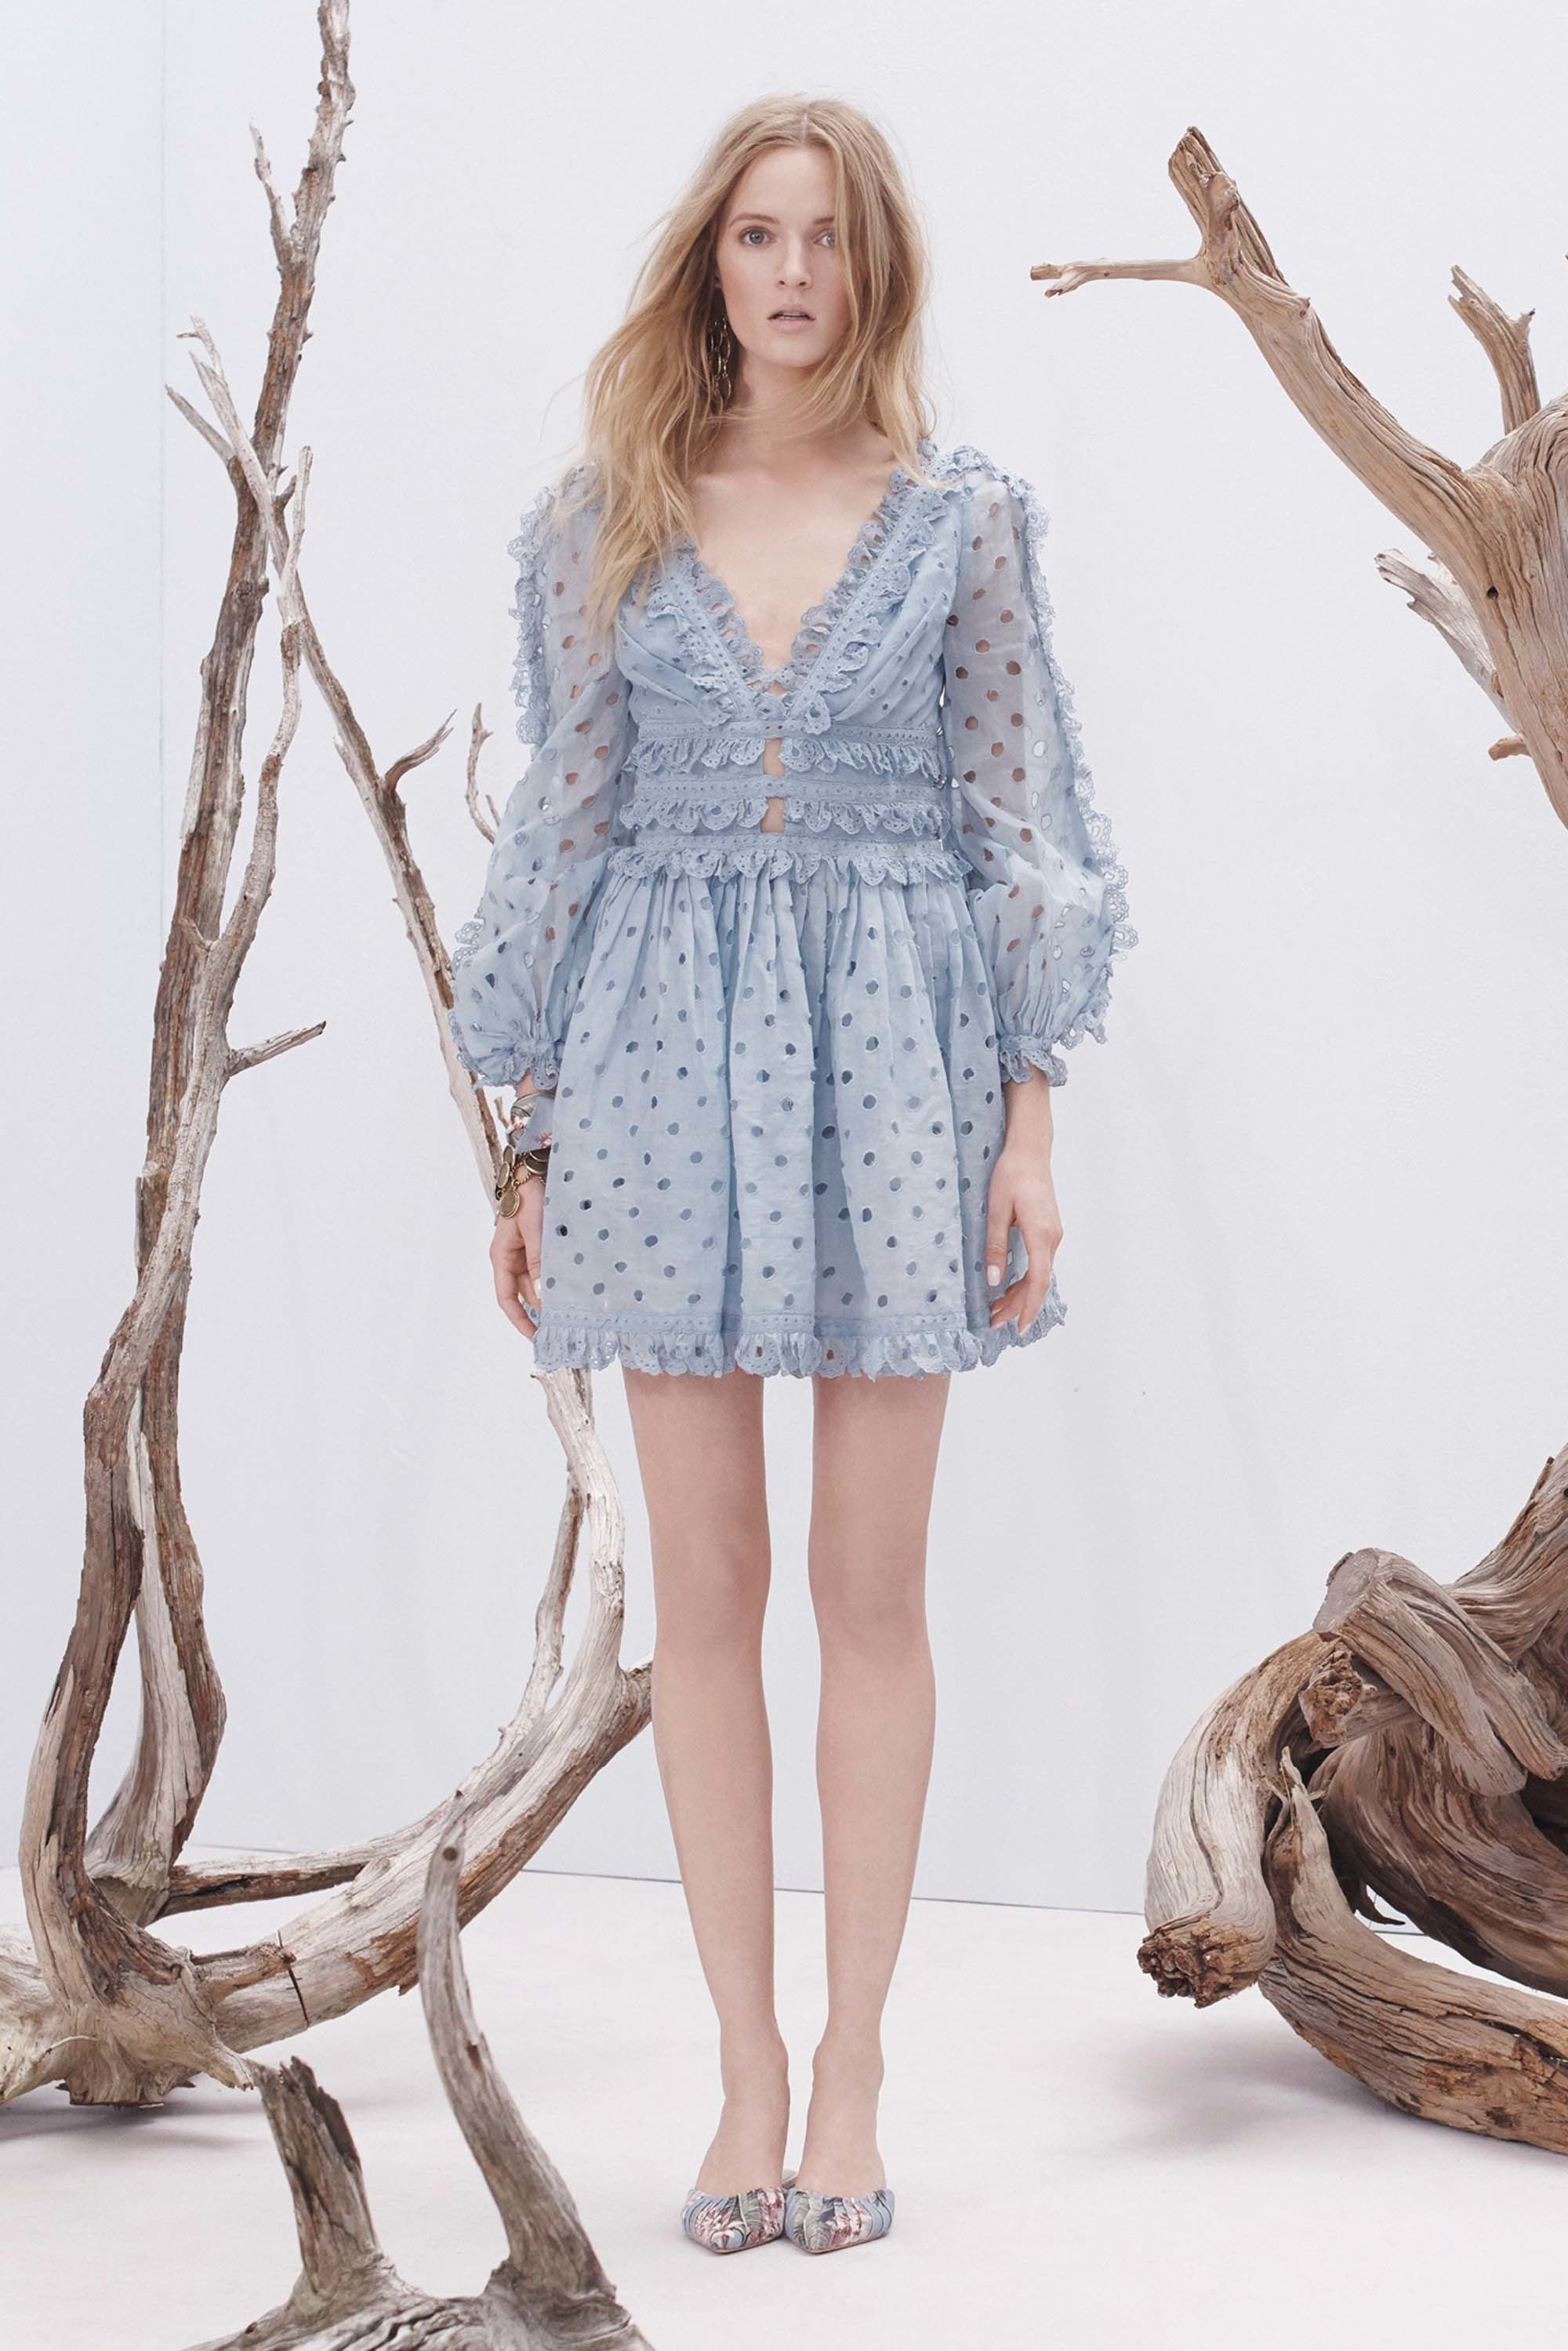 Zimmermann resort fashion show resorts collection and zimmerman